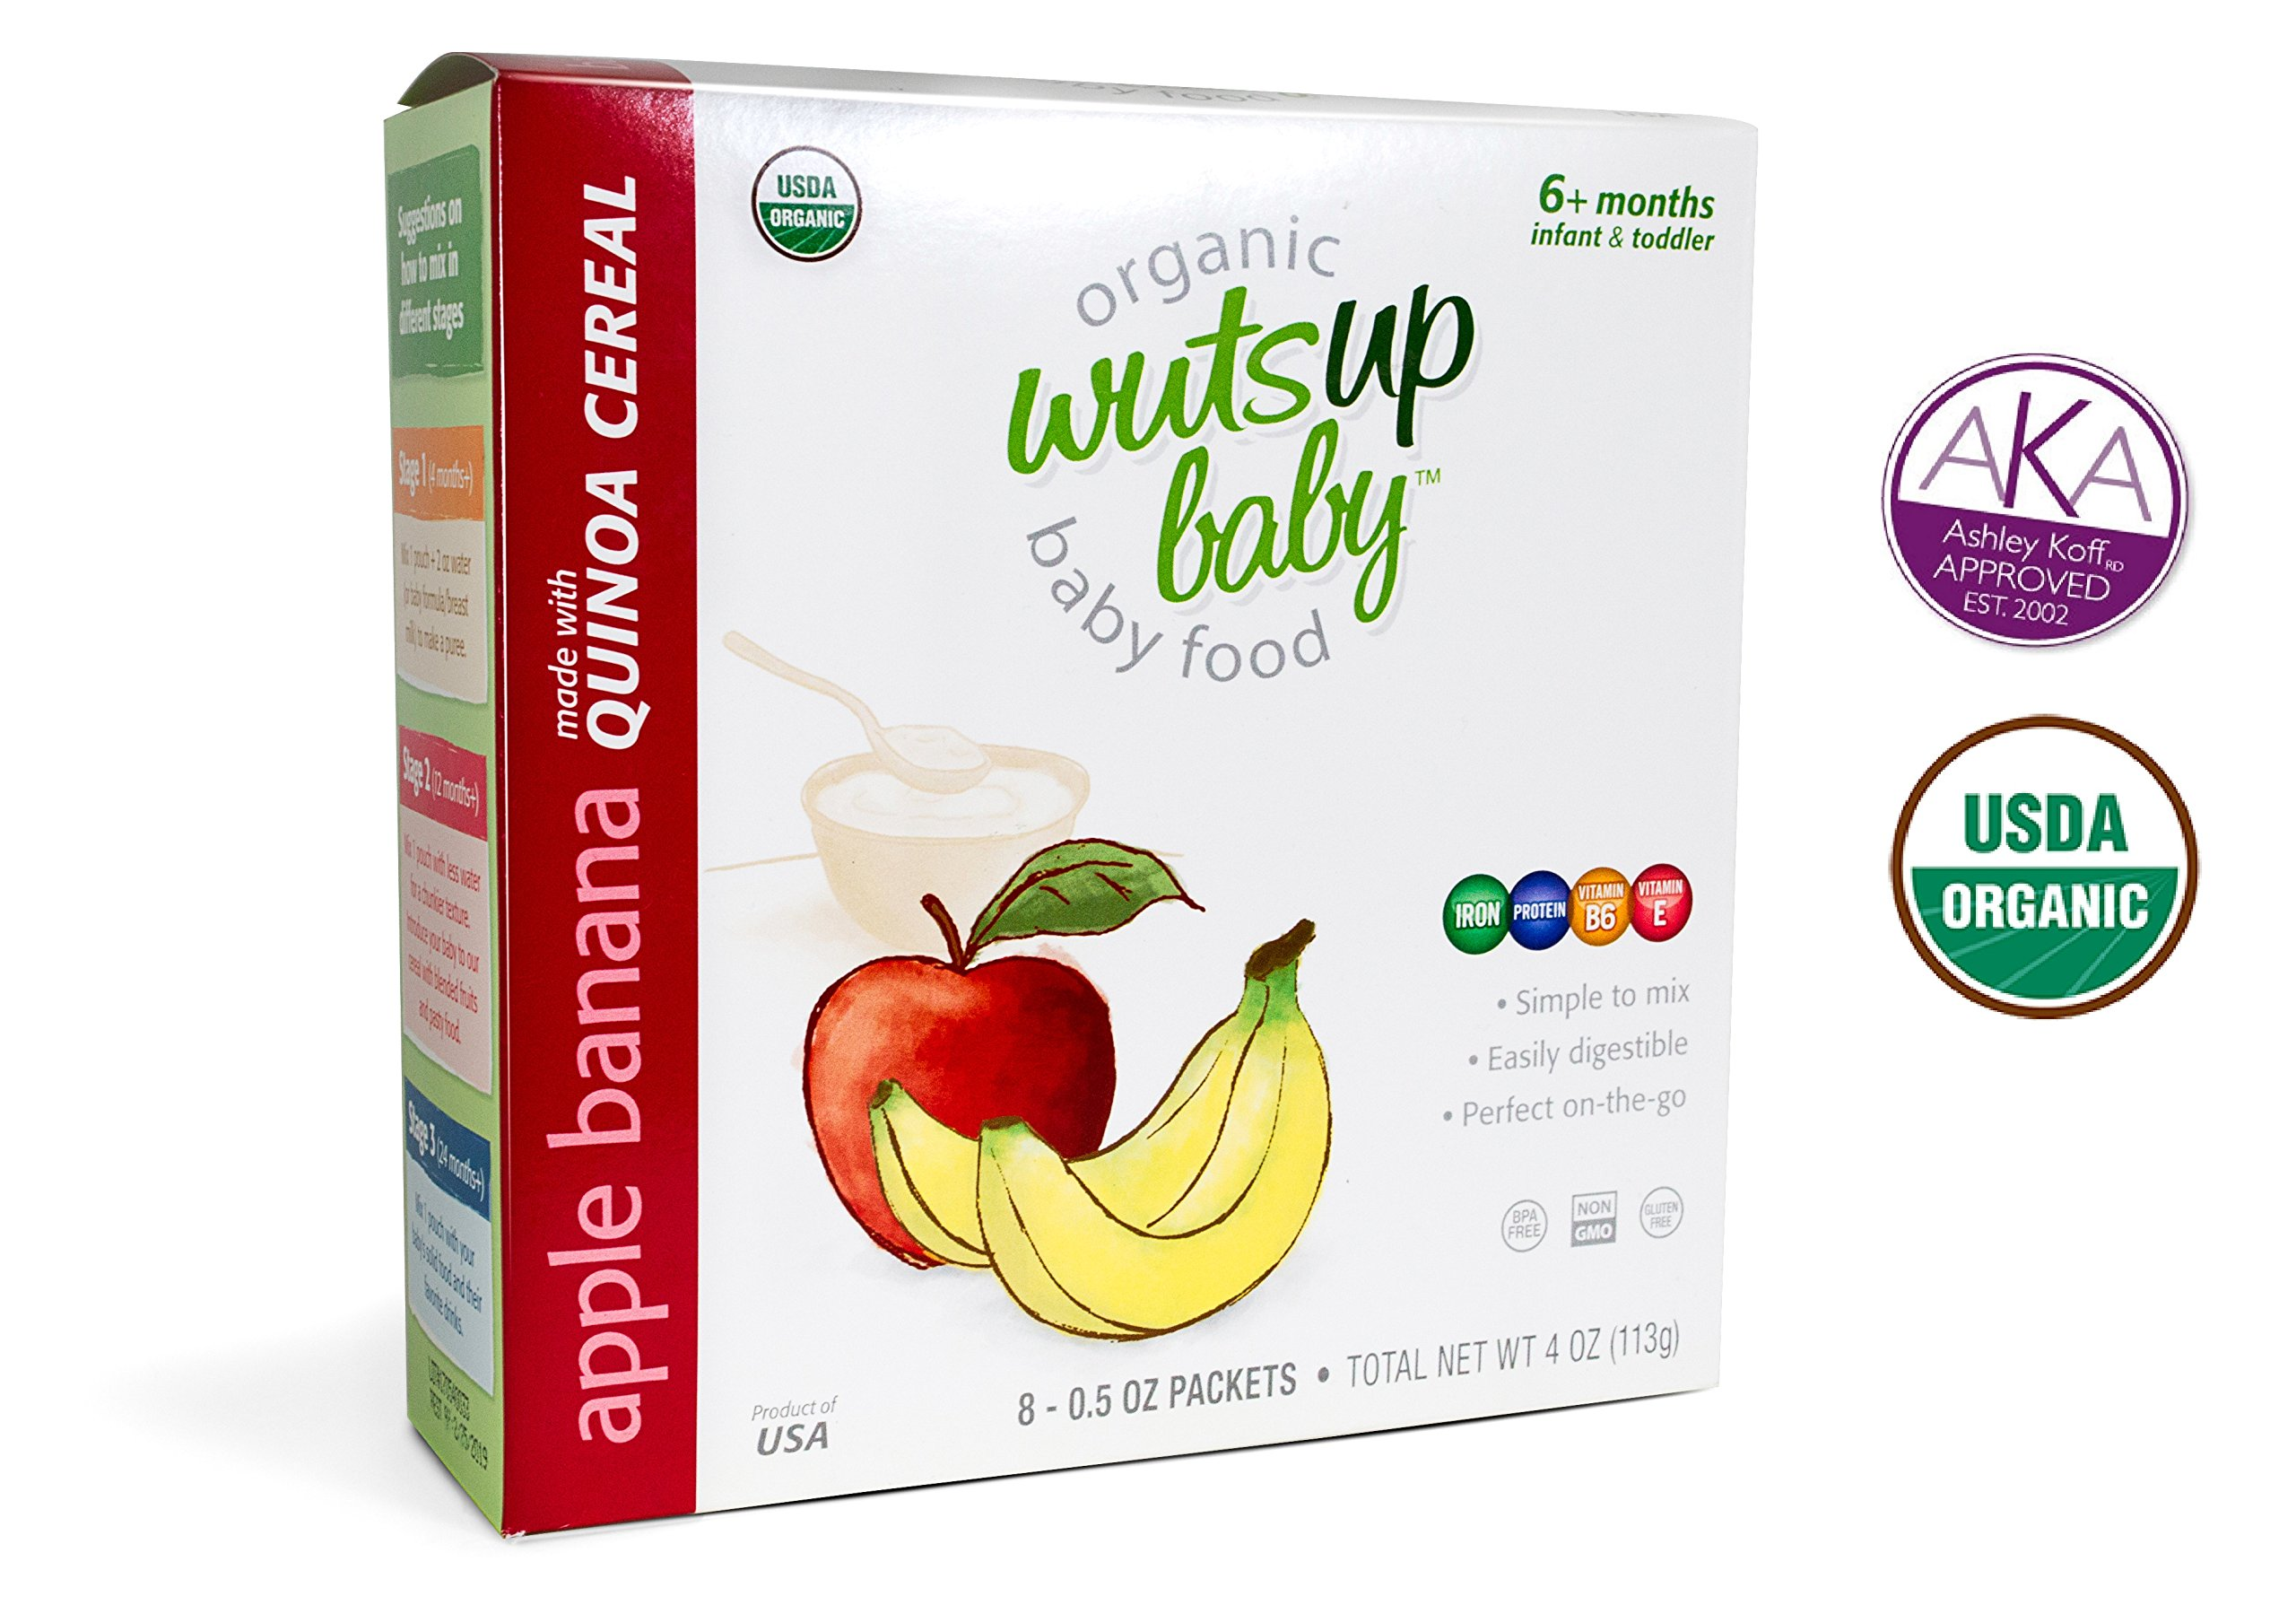 8x Organic Apple Banana Infant & Baby Cereal Travel Packs w/ Naturally Occurring Omega 3, 6, 9 Protein, Iron, Magnesium, B2. Easiest First Foods to Digest. By WutsupBaby – 4oz (8 pack x 0.5oz)